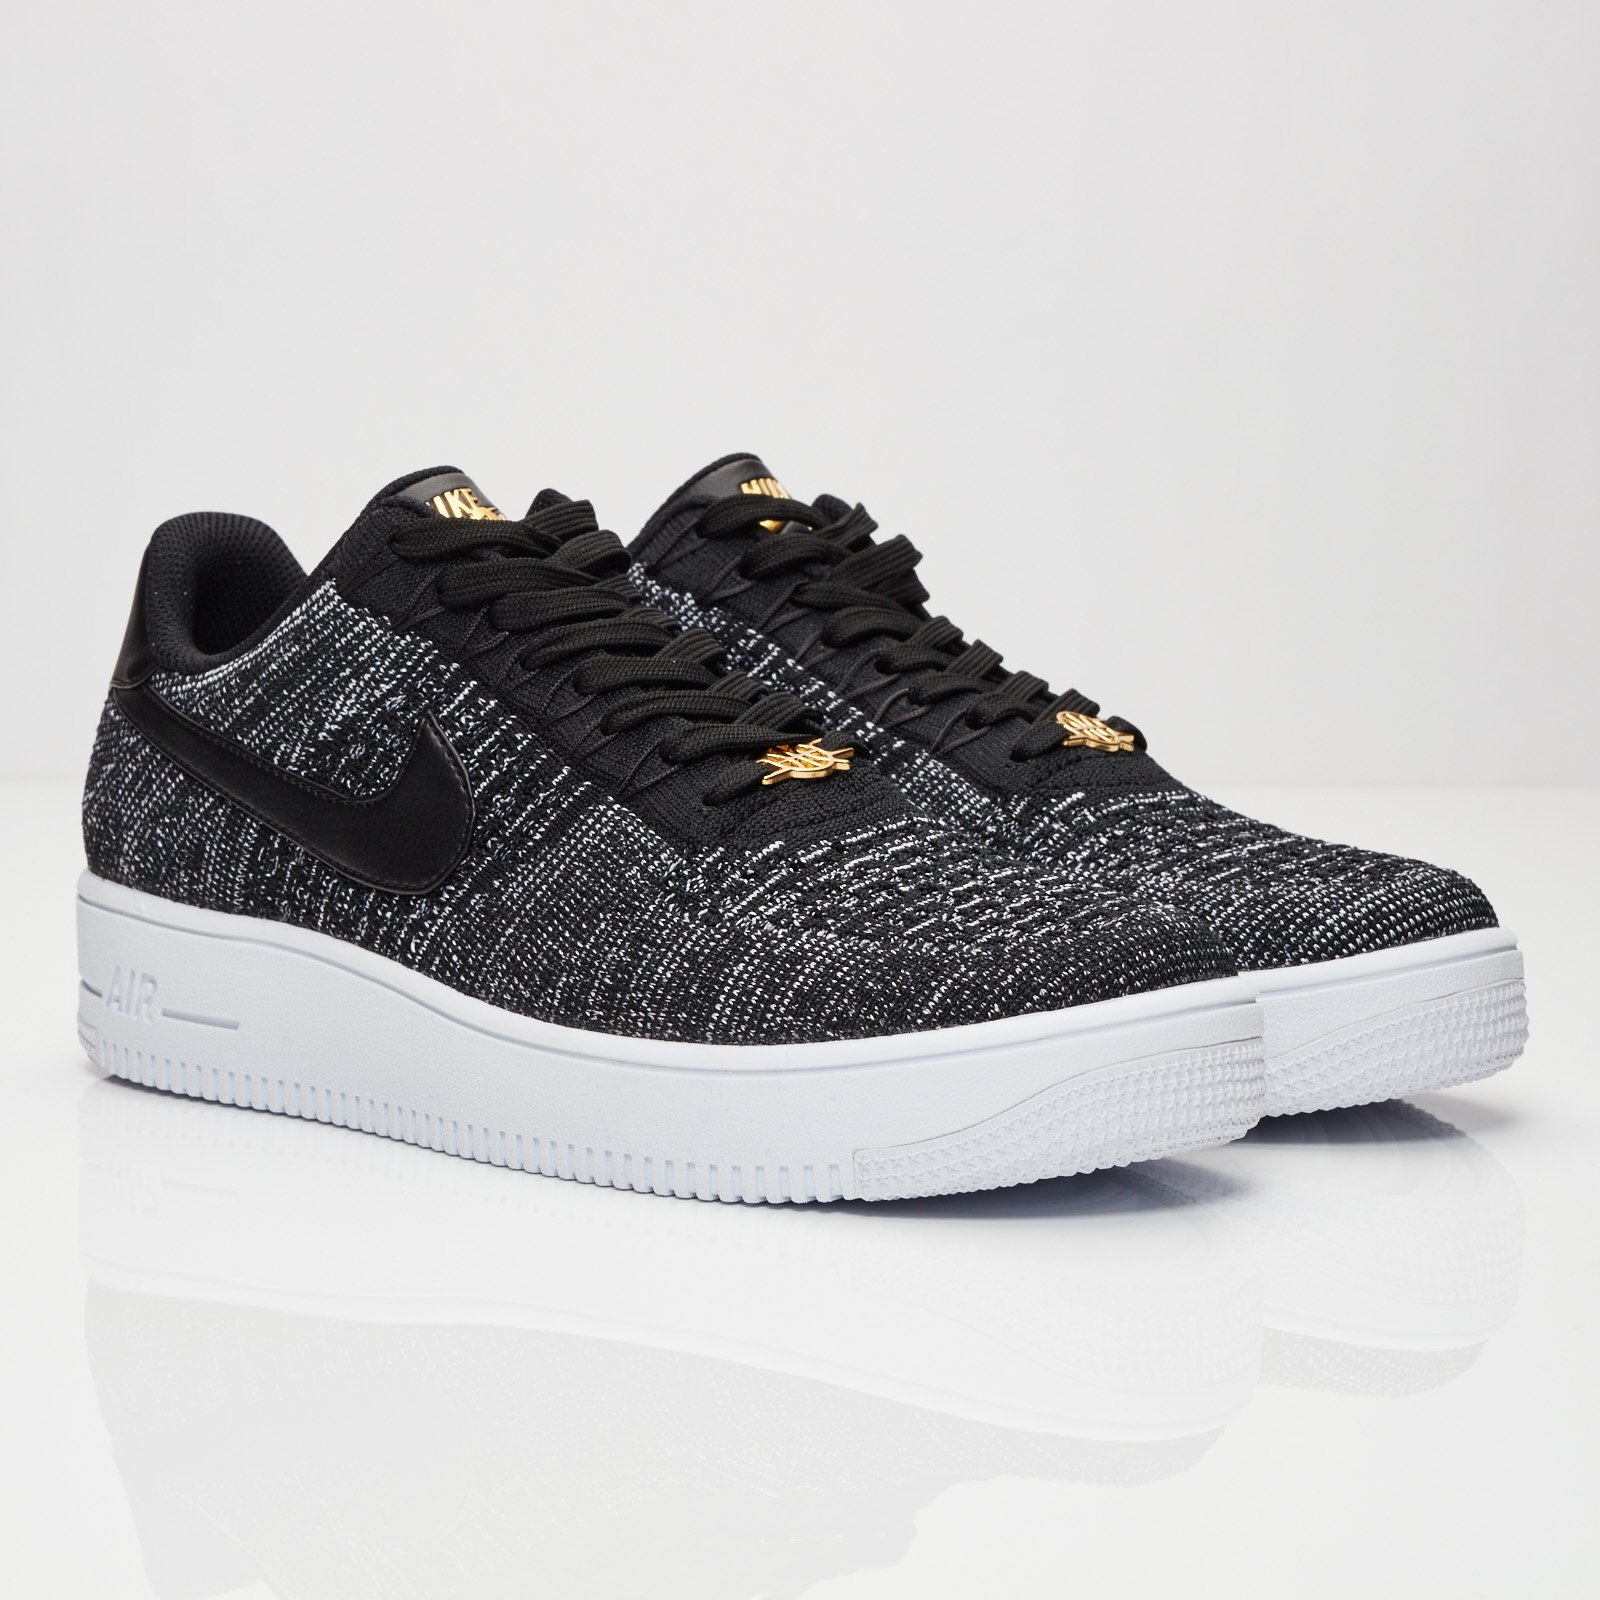 Nike Air Force 1 Low Flyknit Q54 - 853880-001 ...